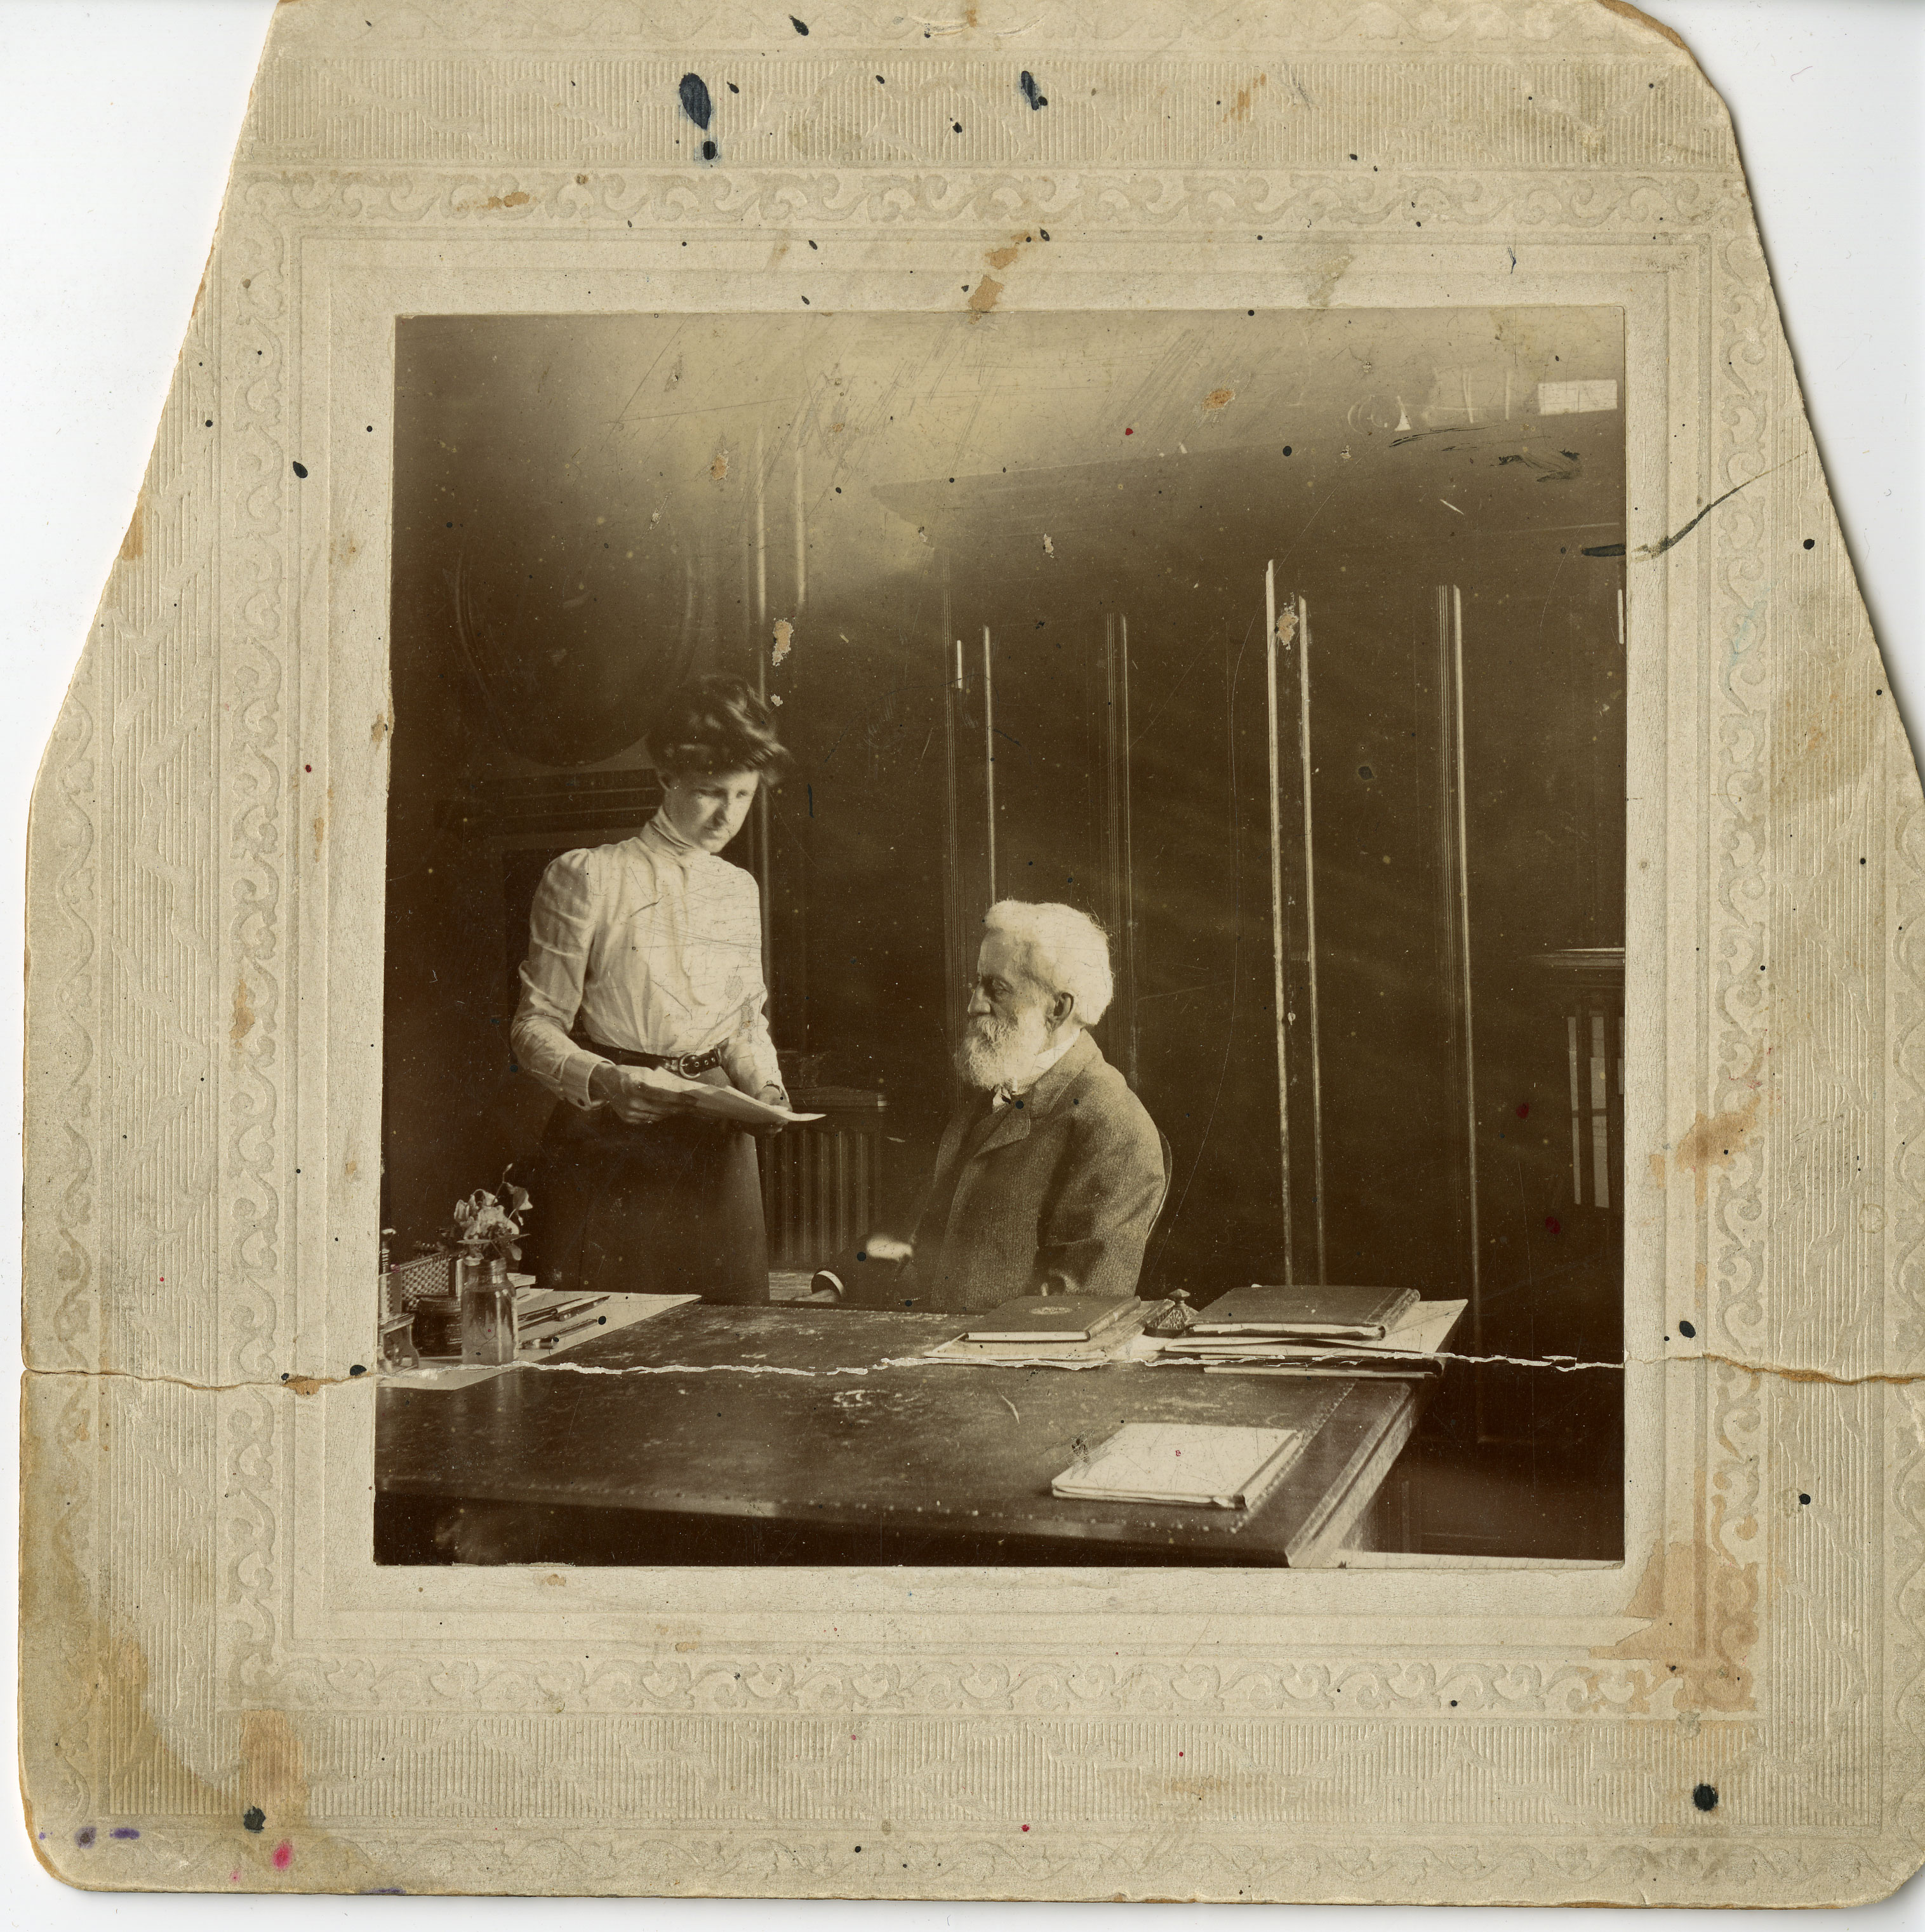 A man and woman interact. The man is sitting at a desk and the woman is standing and holding a piece